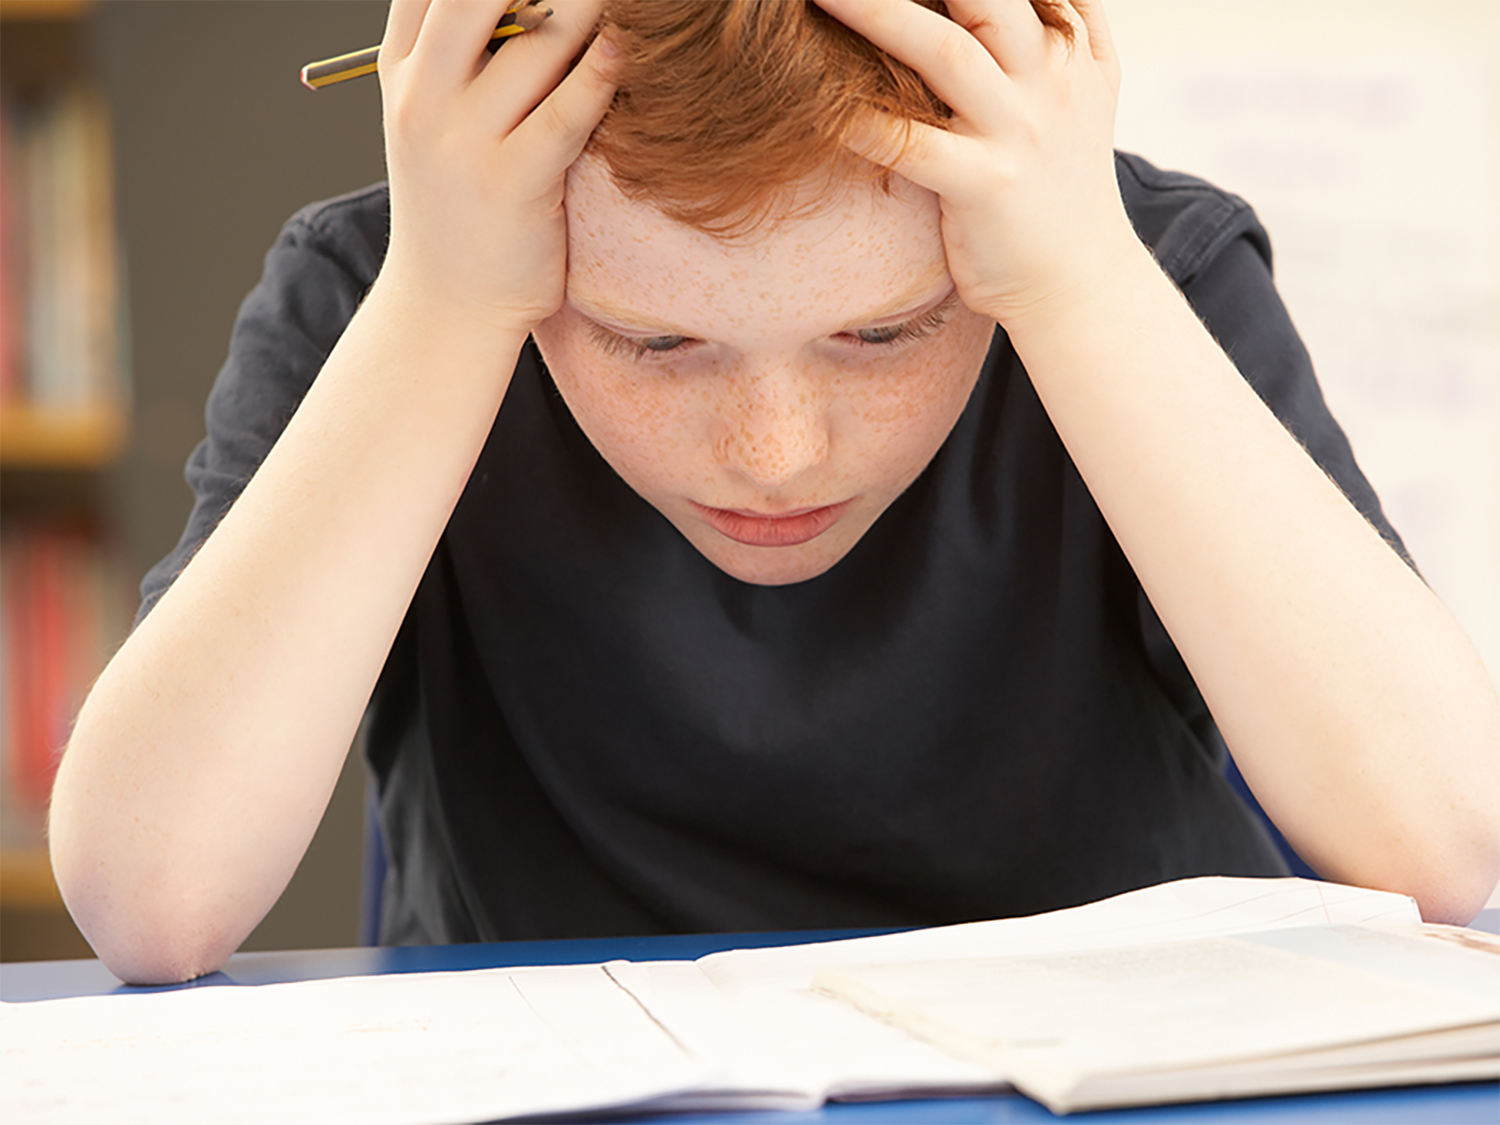 8 Warning Signs That Your Child Is Under Too Much Stress